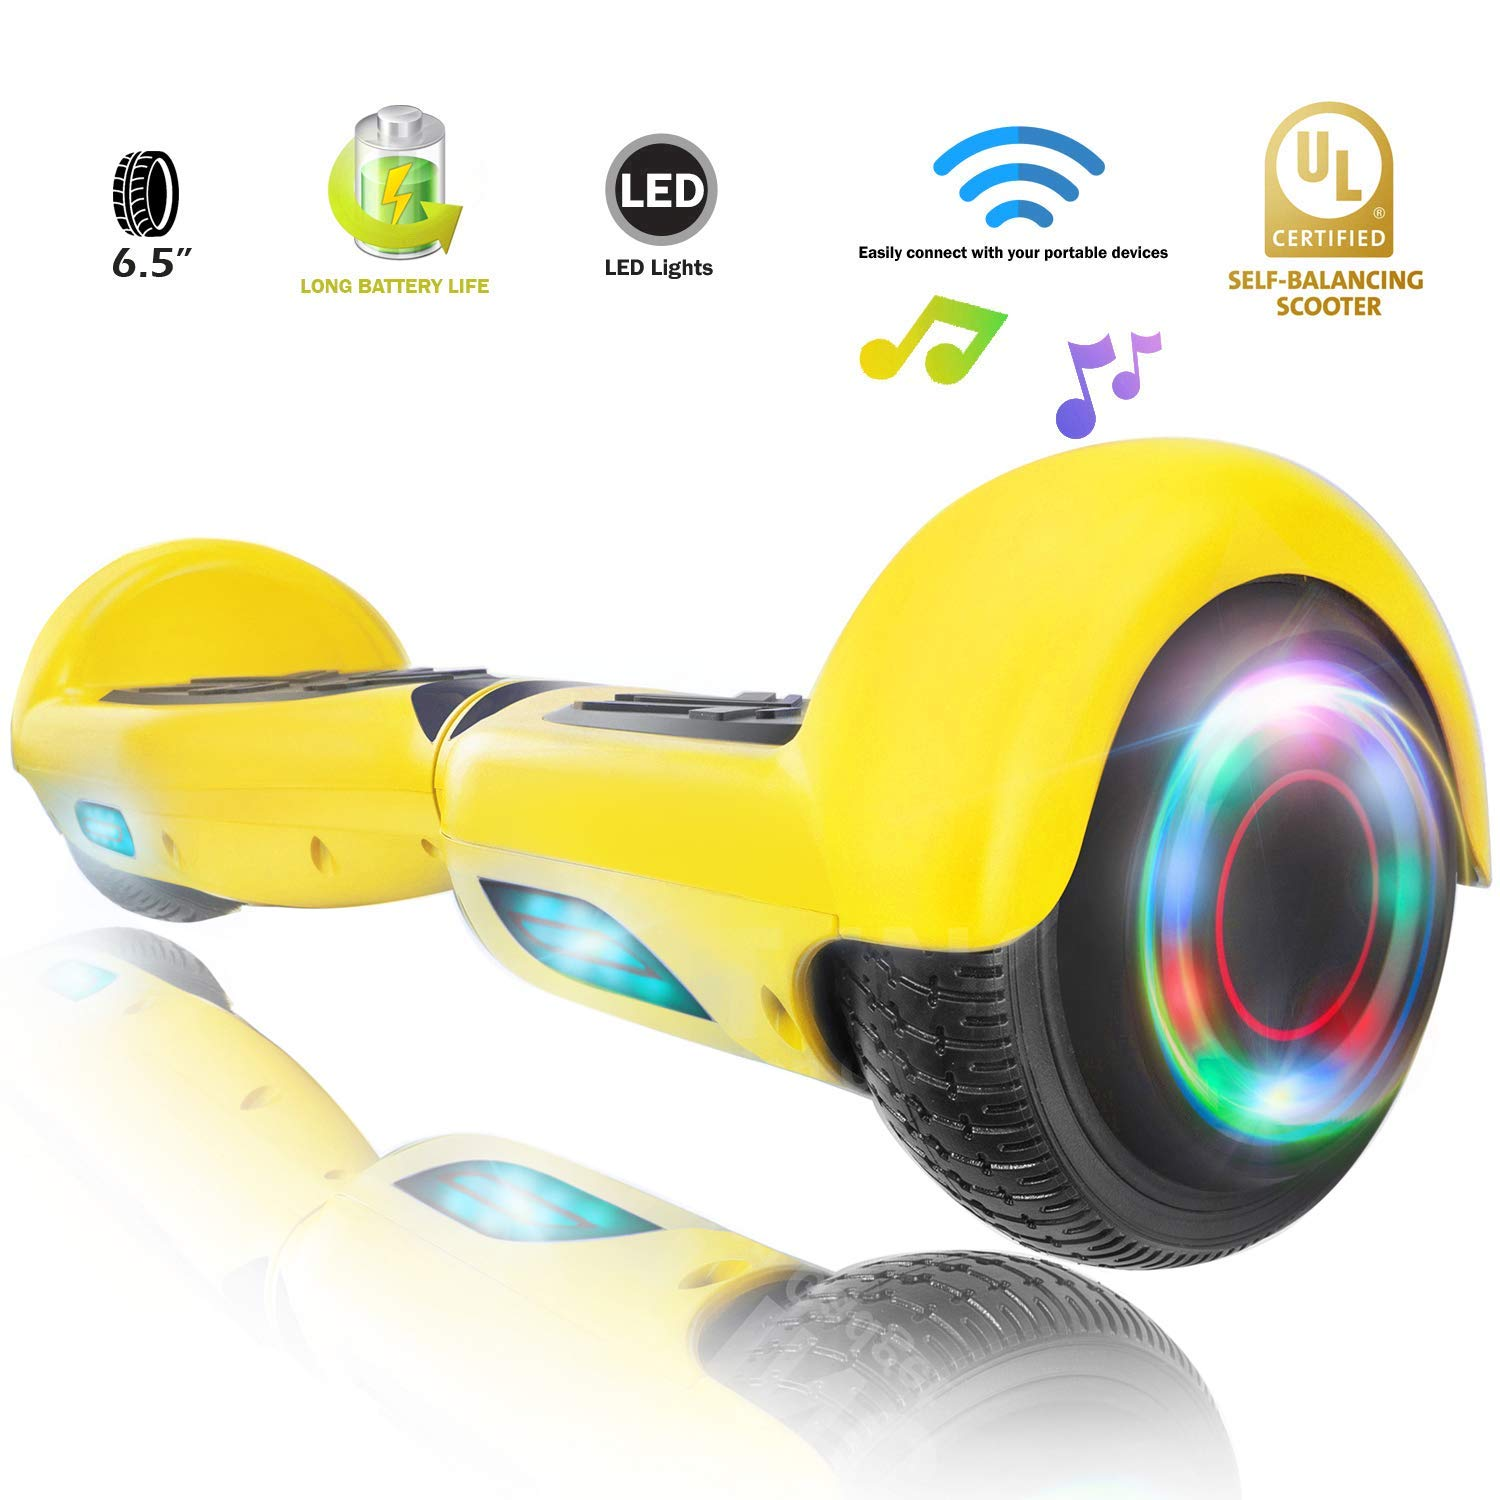 XPRIT Easter Sale Hoverboard w/Bluetooth Speaker (Yellow) by XPRIT (Image #1)